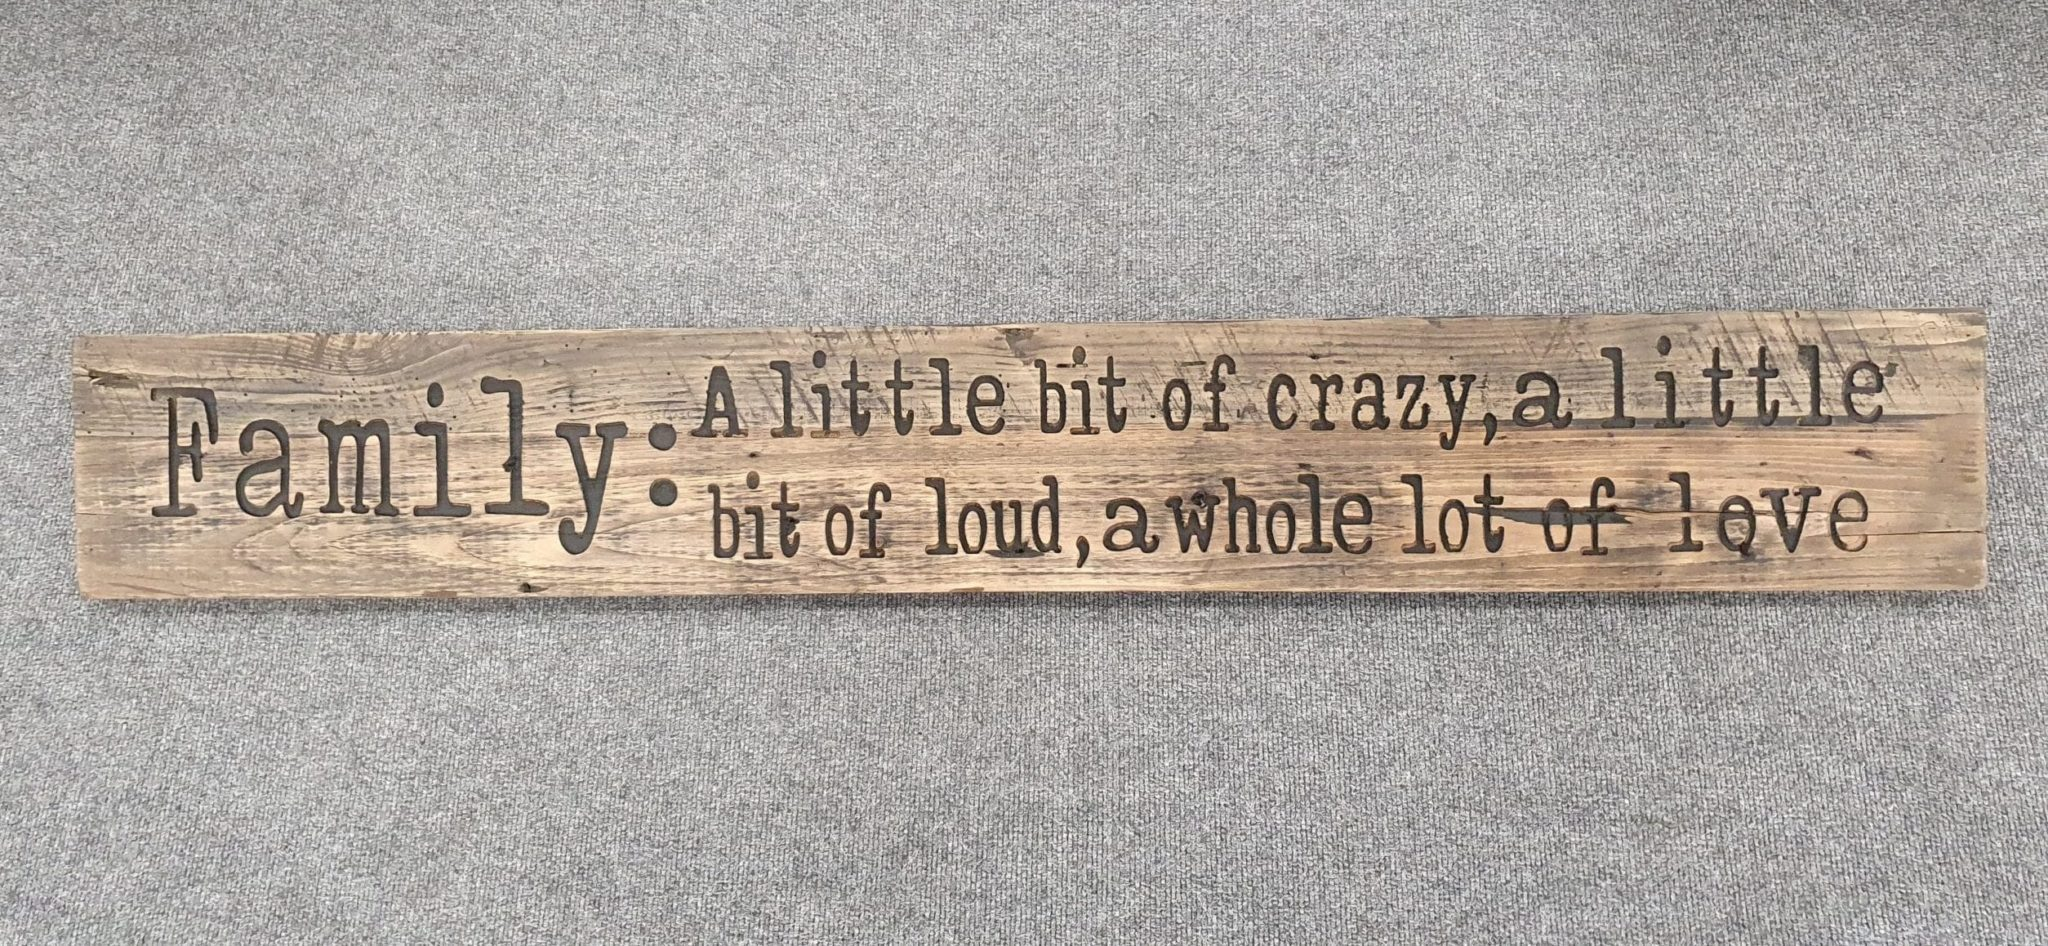 A Rustic Wooden Plaque quoting Family, A little bit of crazy, a little bit of loud, a whole lot of love, engraved